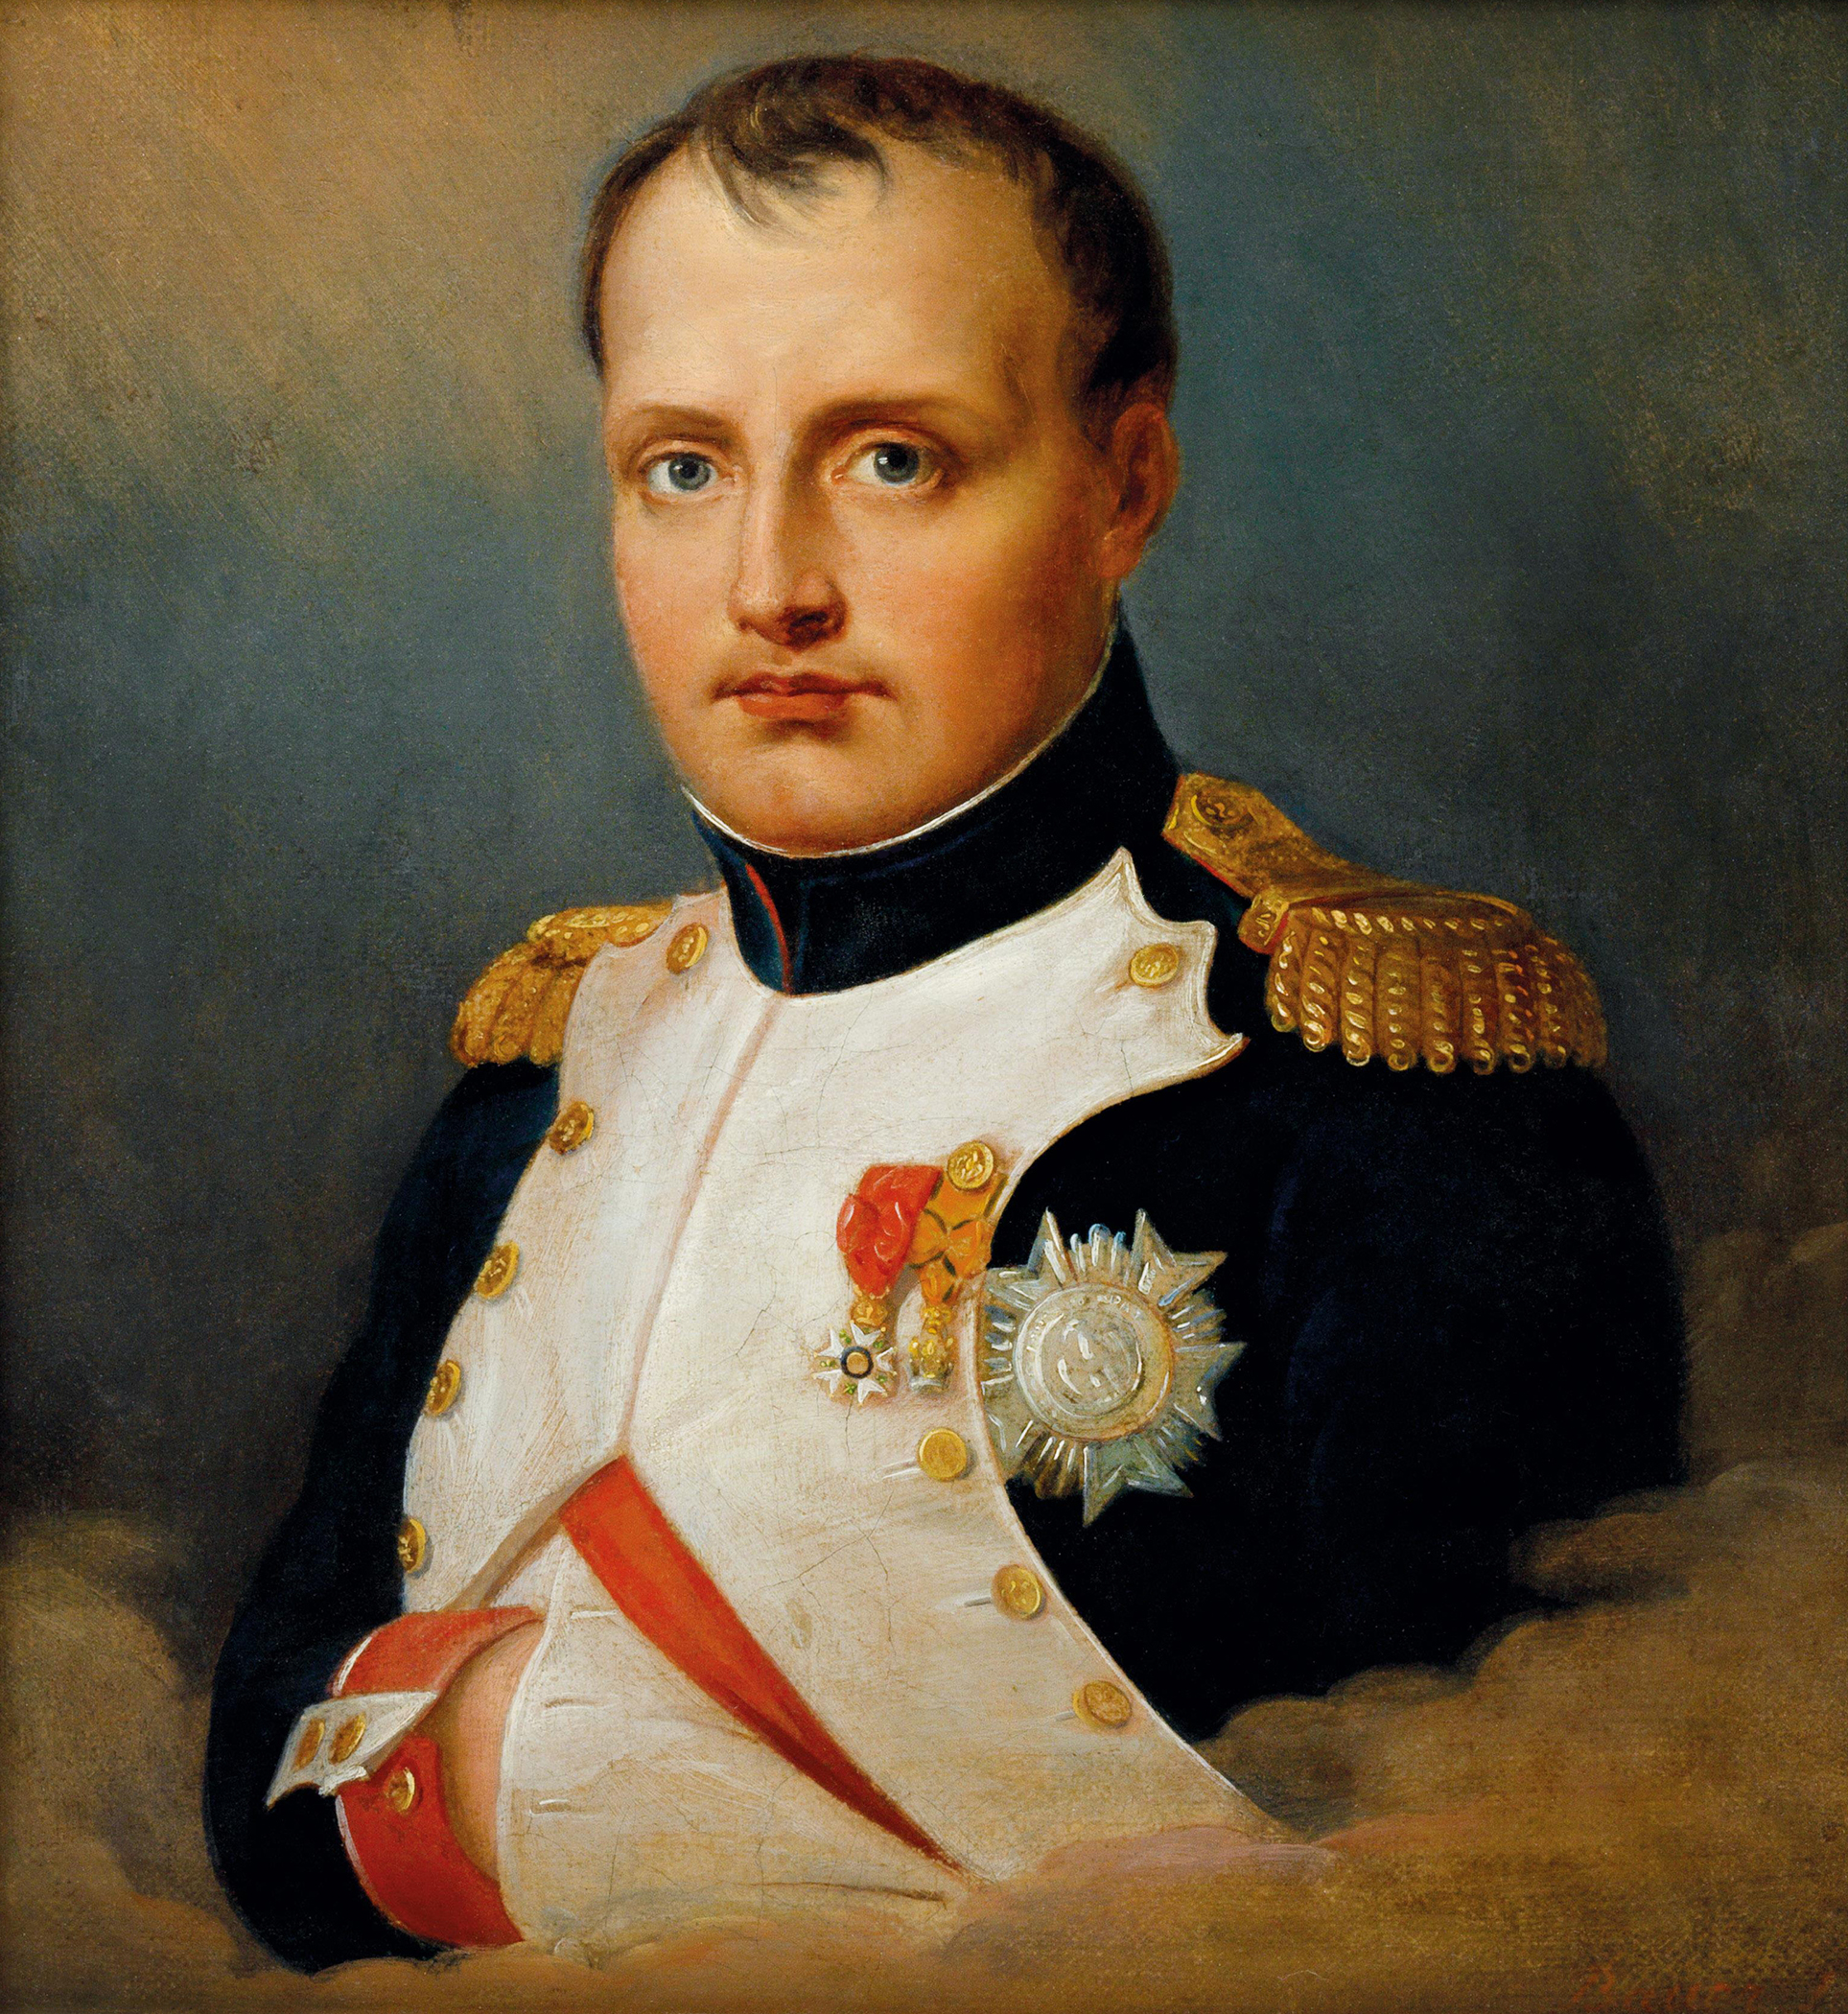 Portrait of Napoléon Bonaparte (1769-1821), Divisional general (1795), First Consul of the French Republic (1799-1804), Emperor of the French (1804-1814; 1815), King of Italy (1805-1814), Mediator of the Swiss Confederation (1803-1813), Protector of the Confederation of the Rhine (1806-1813), Sovereign of the Island of Elba (1814-1815) | Portraits of Kings